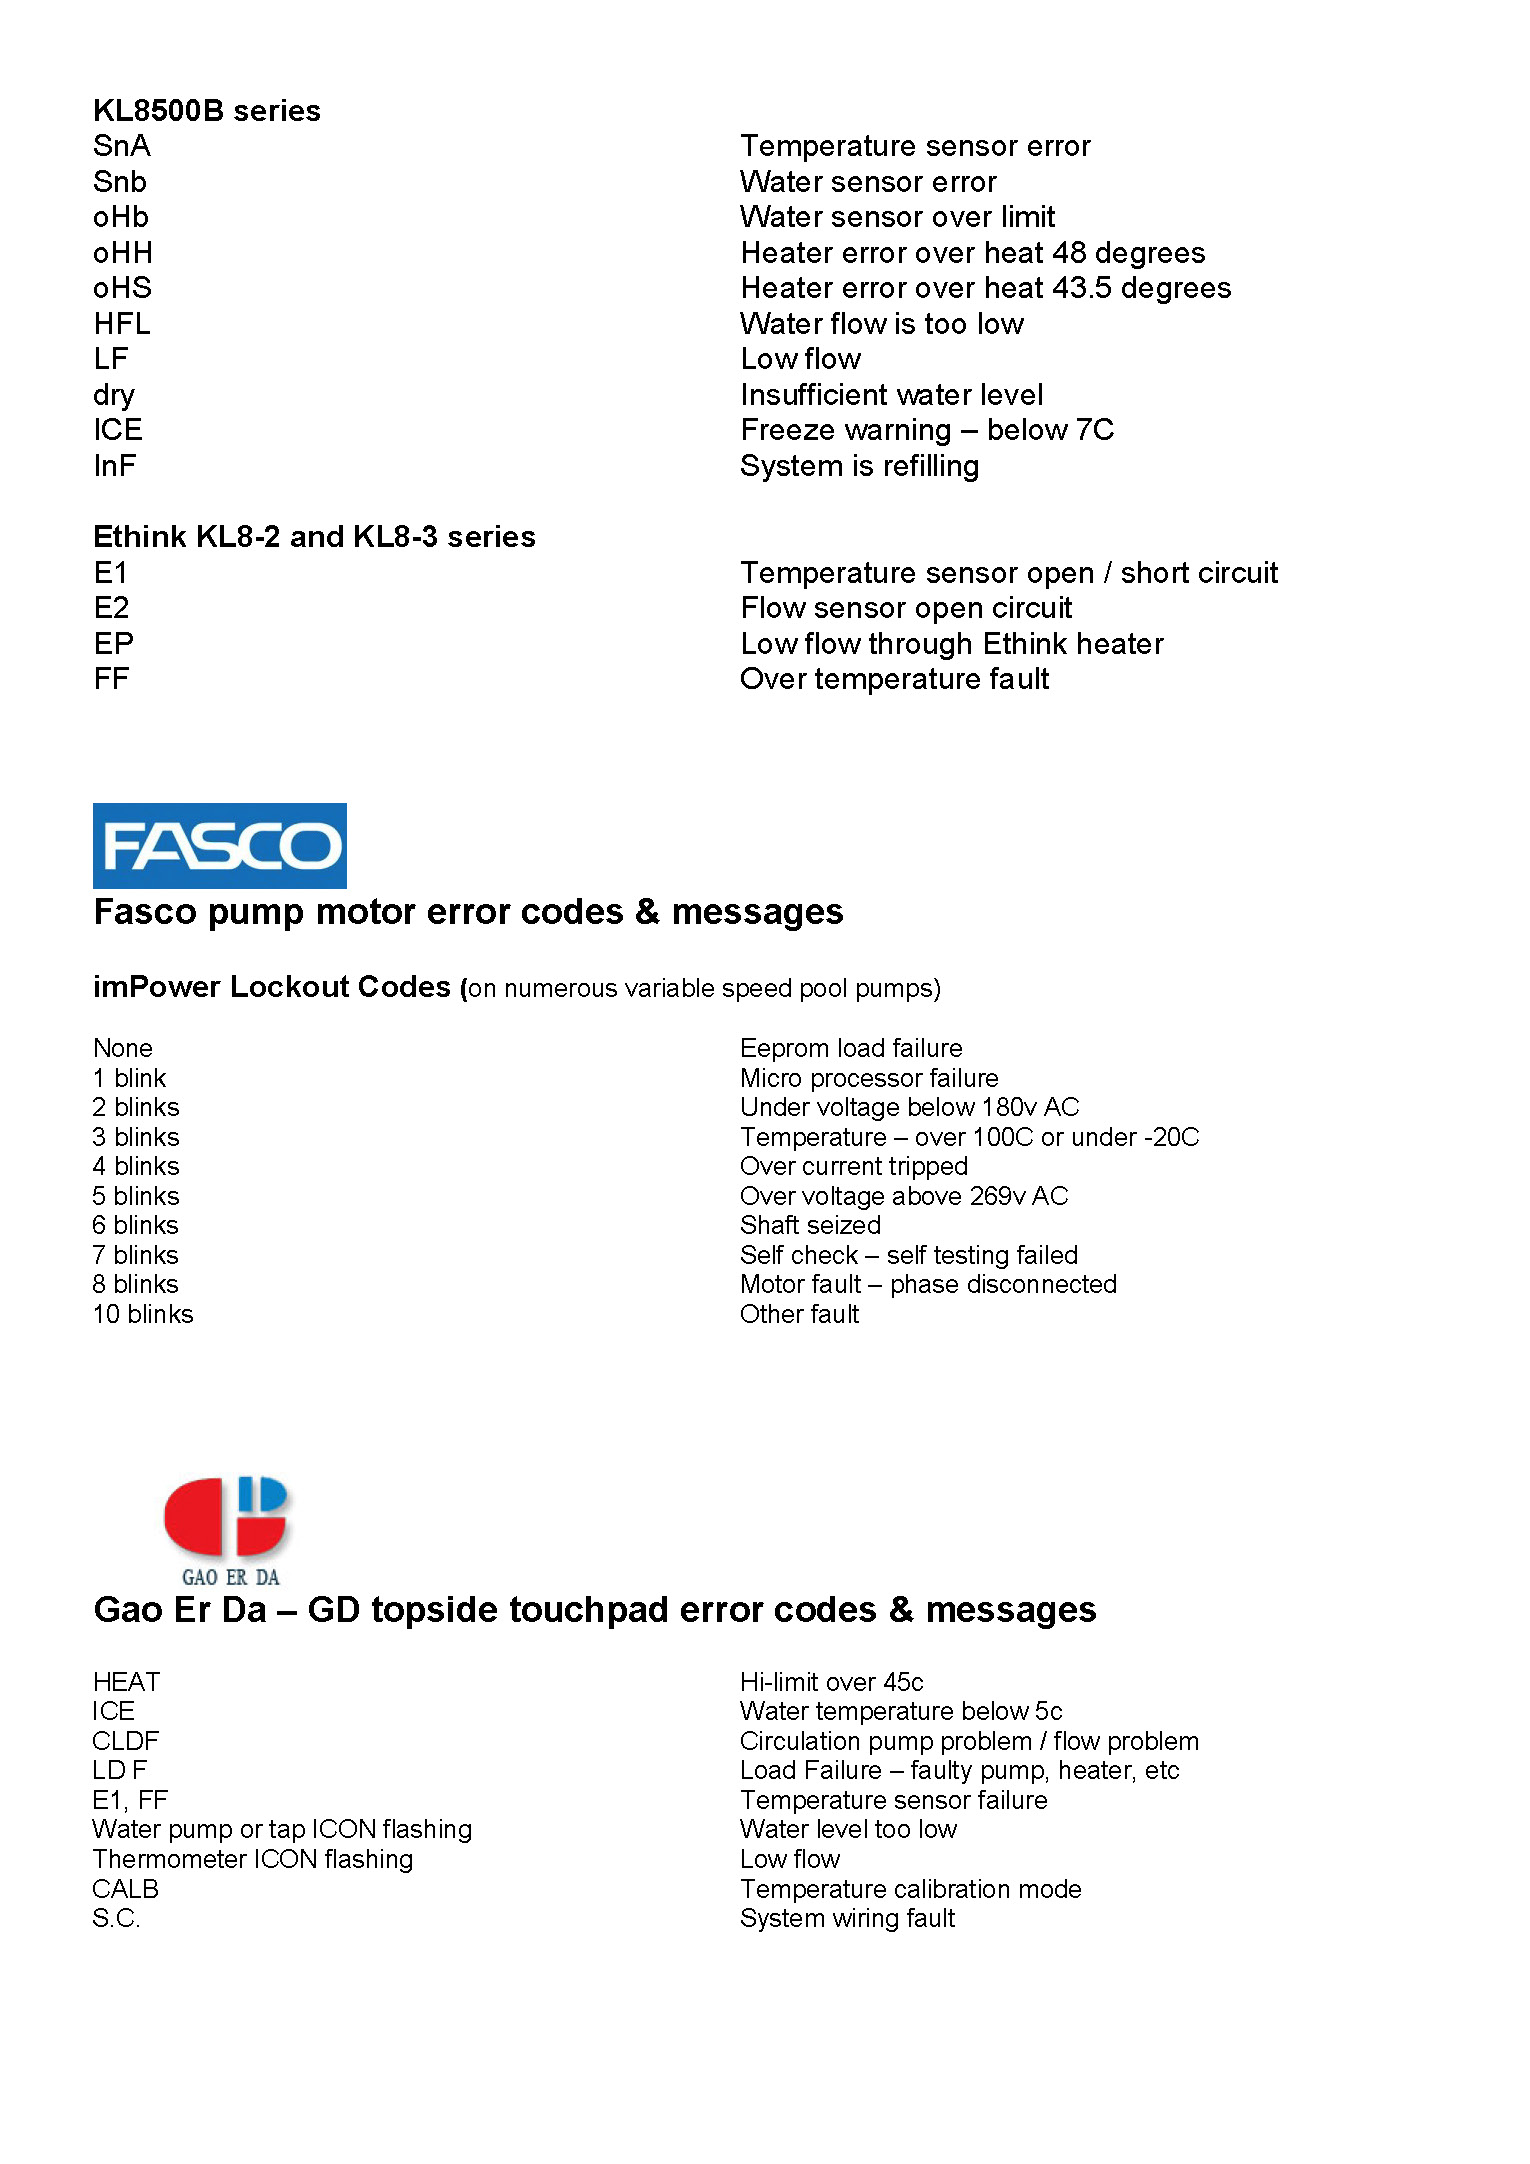 hight resolution of spa topside panel error fault codes ethink fasco gao er da